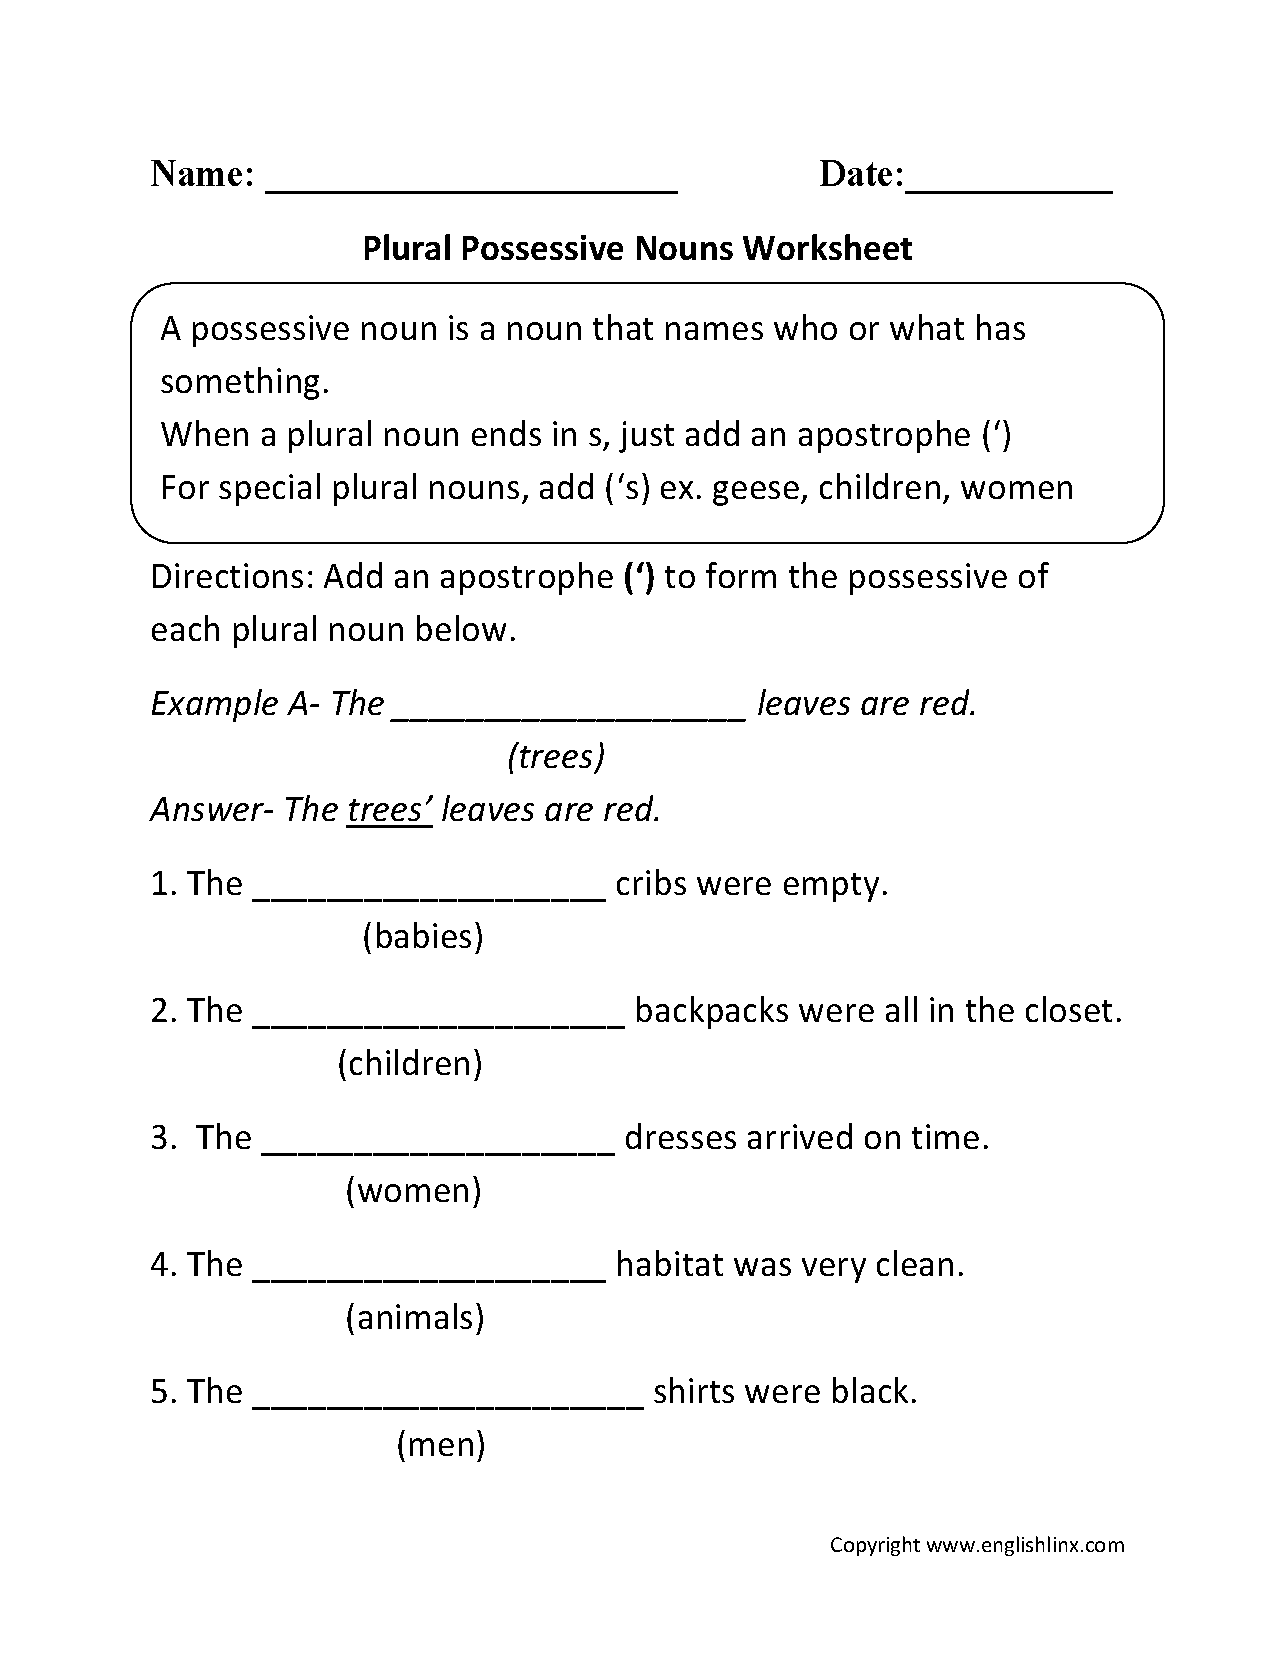 Plural Possessive Nouns Worksheets Pinteres